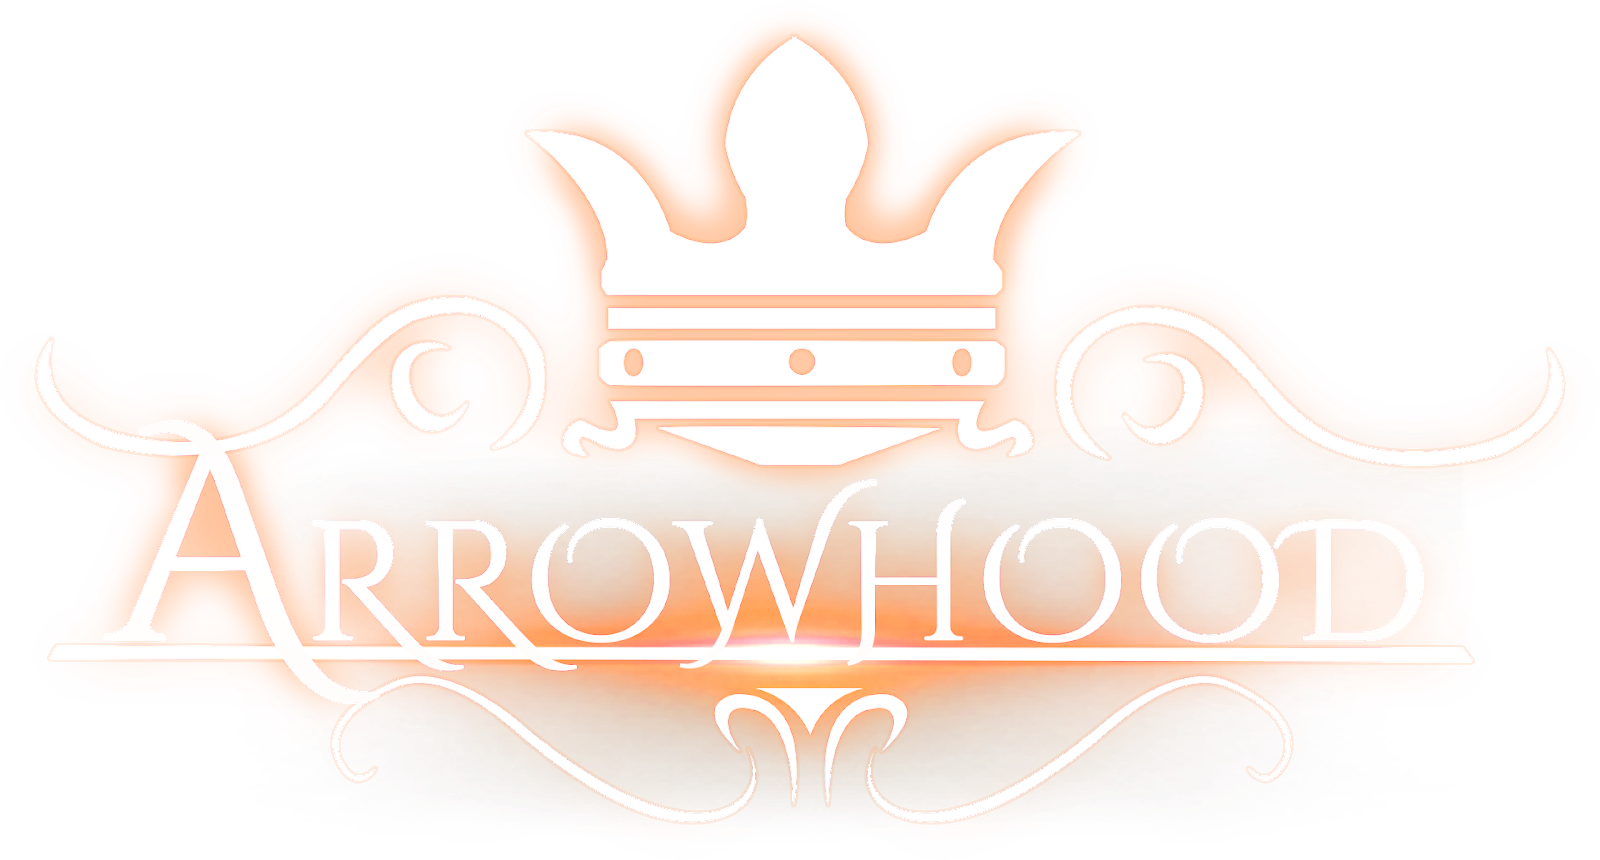 Arrowhood